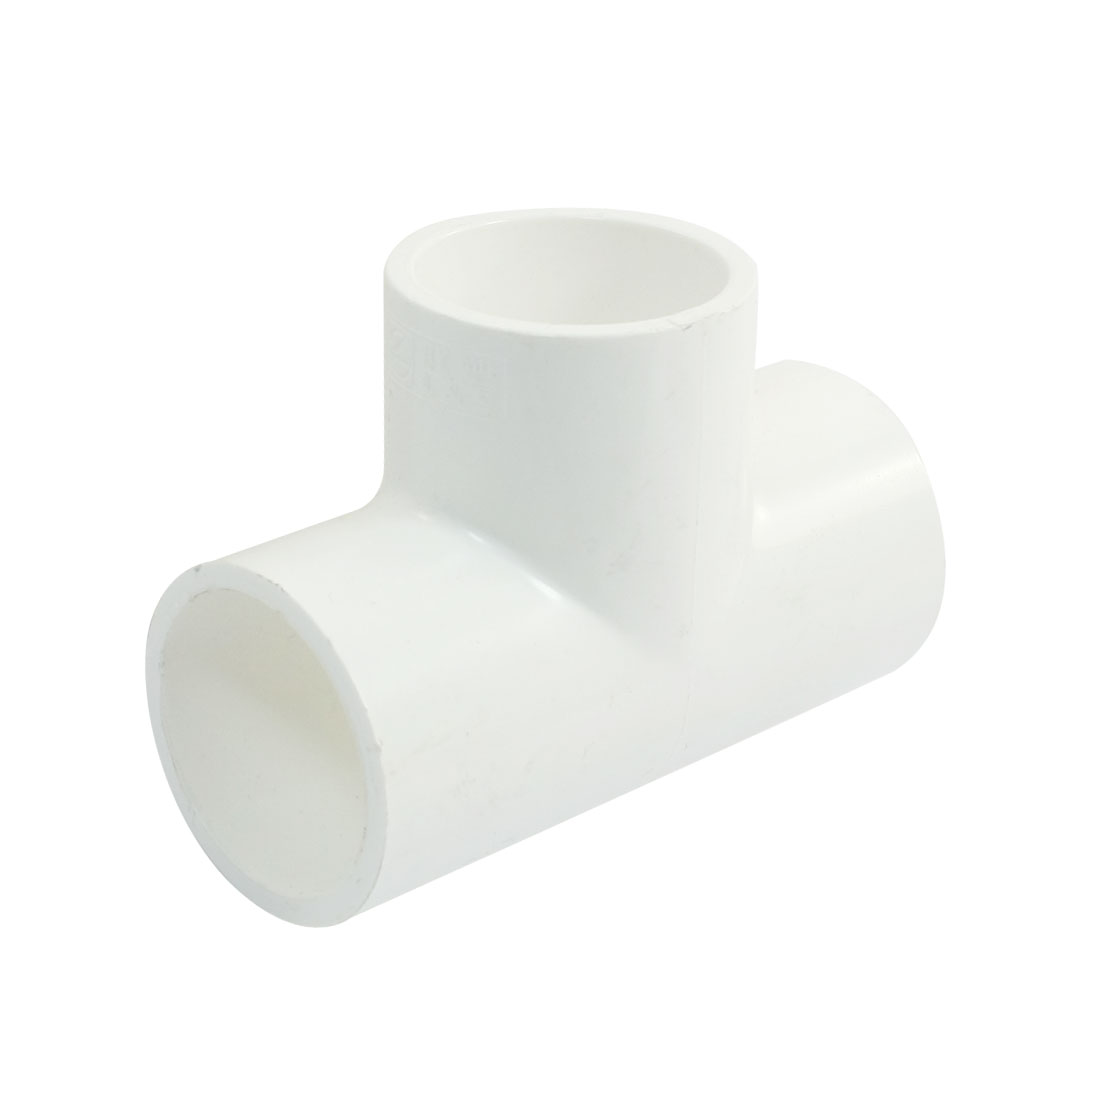 20mm-x-20mm-3-Ways-Plain-Equal-Tee-PVC-U-Pipe-Slip-Connector-Adapter-White